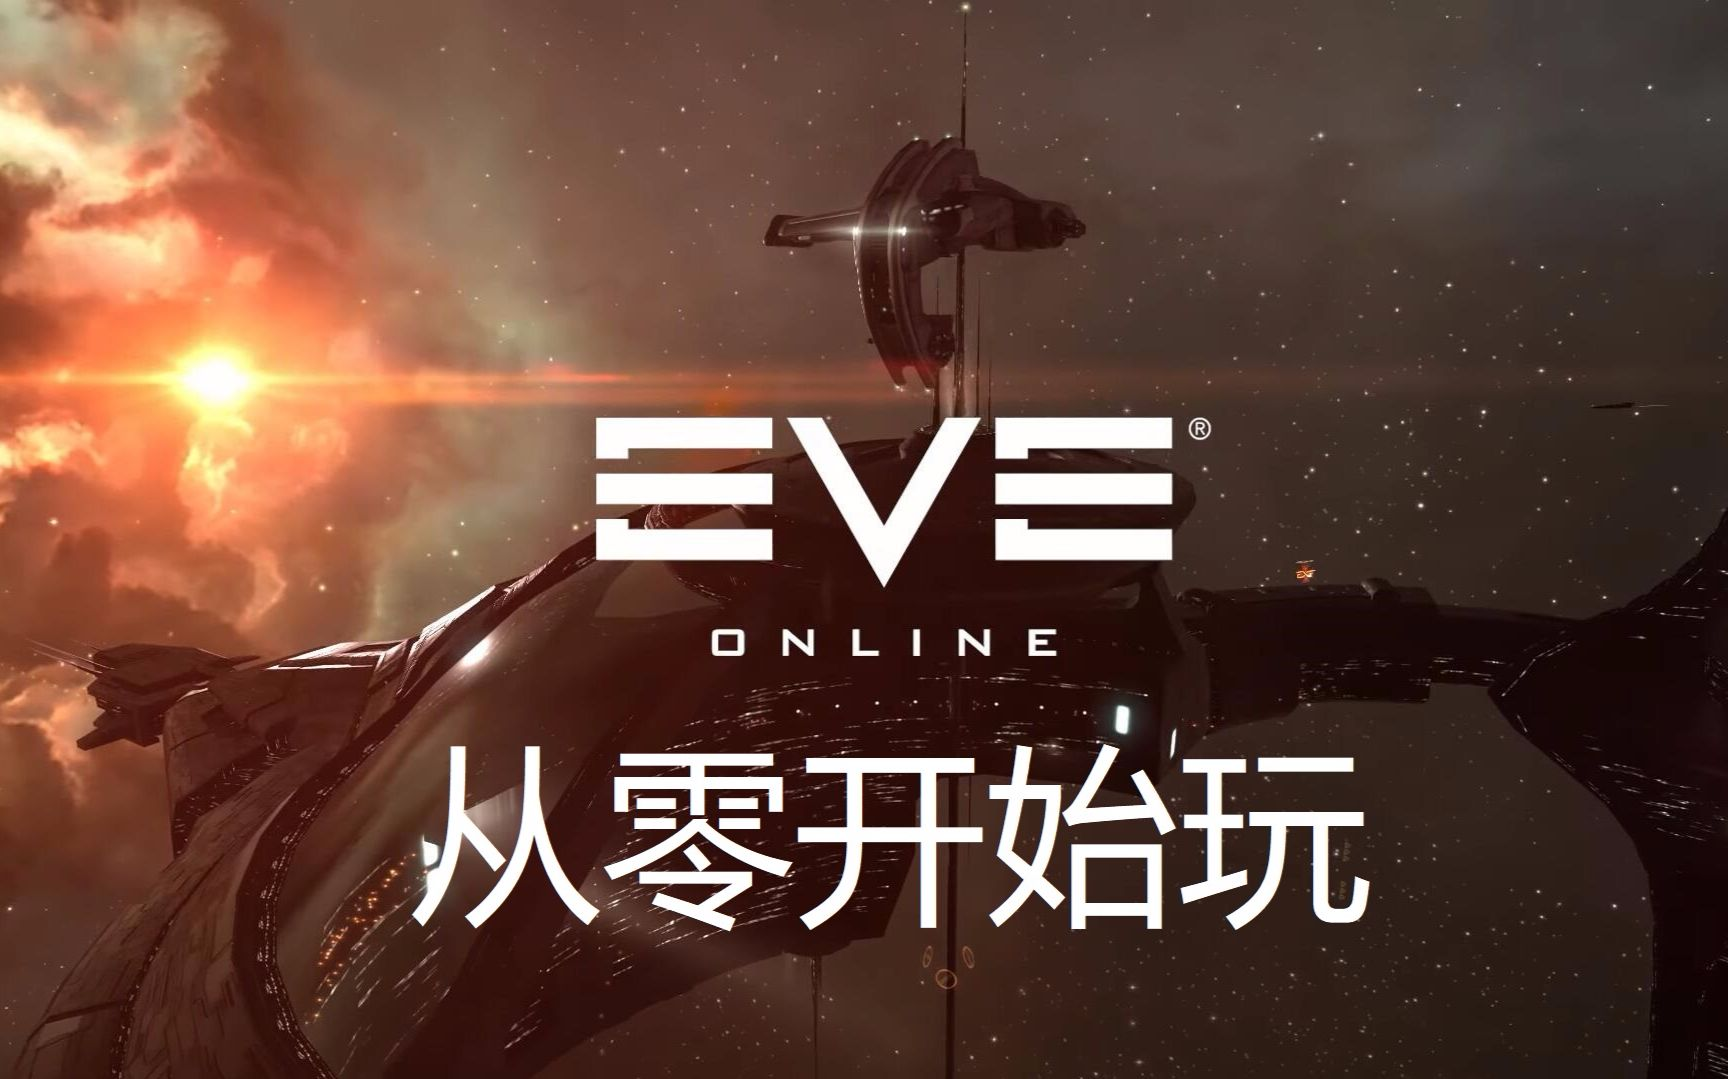 eve online gameplay 2017 - photo #13